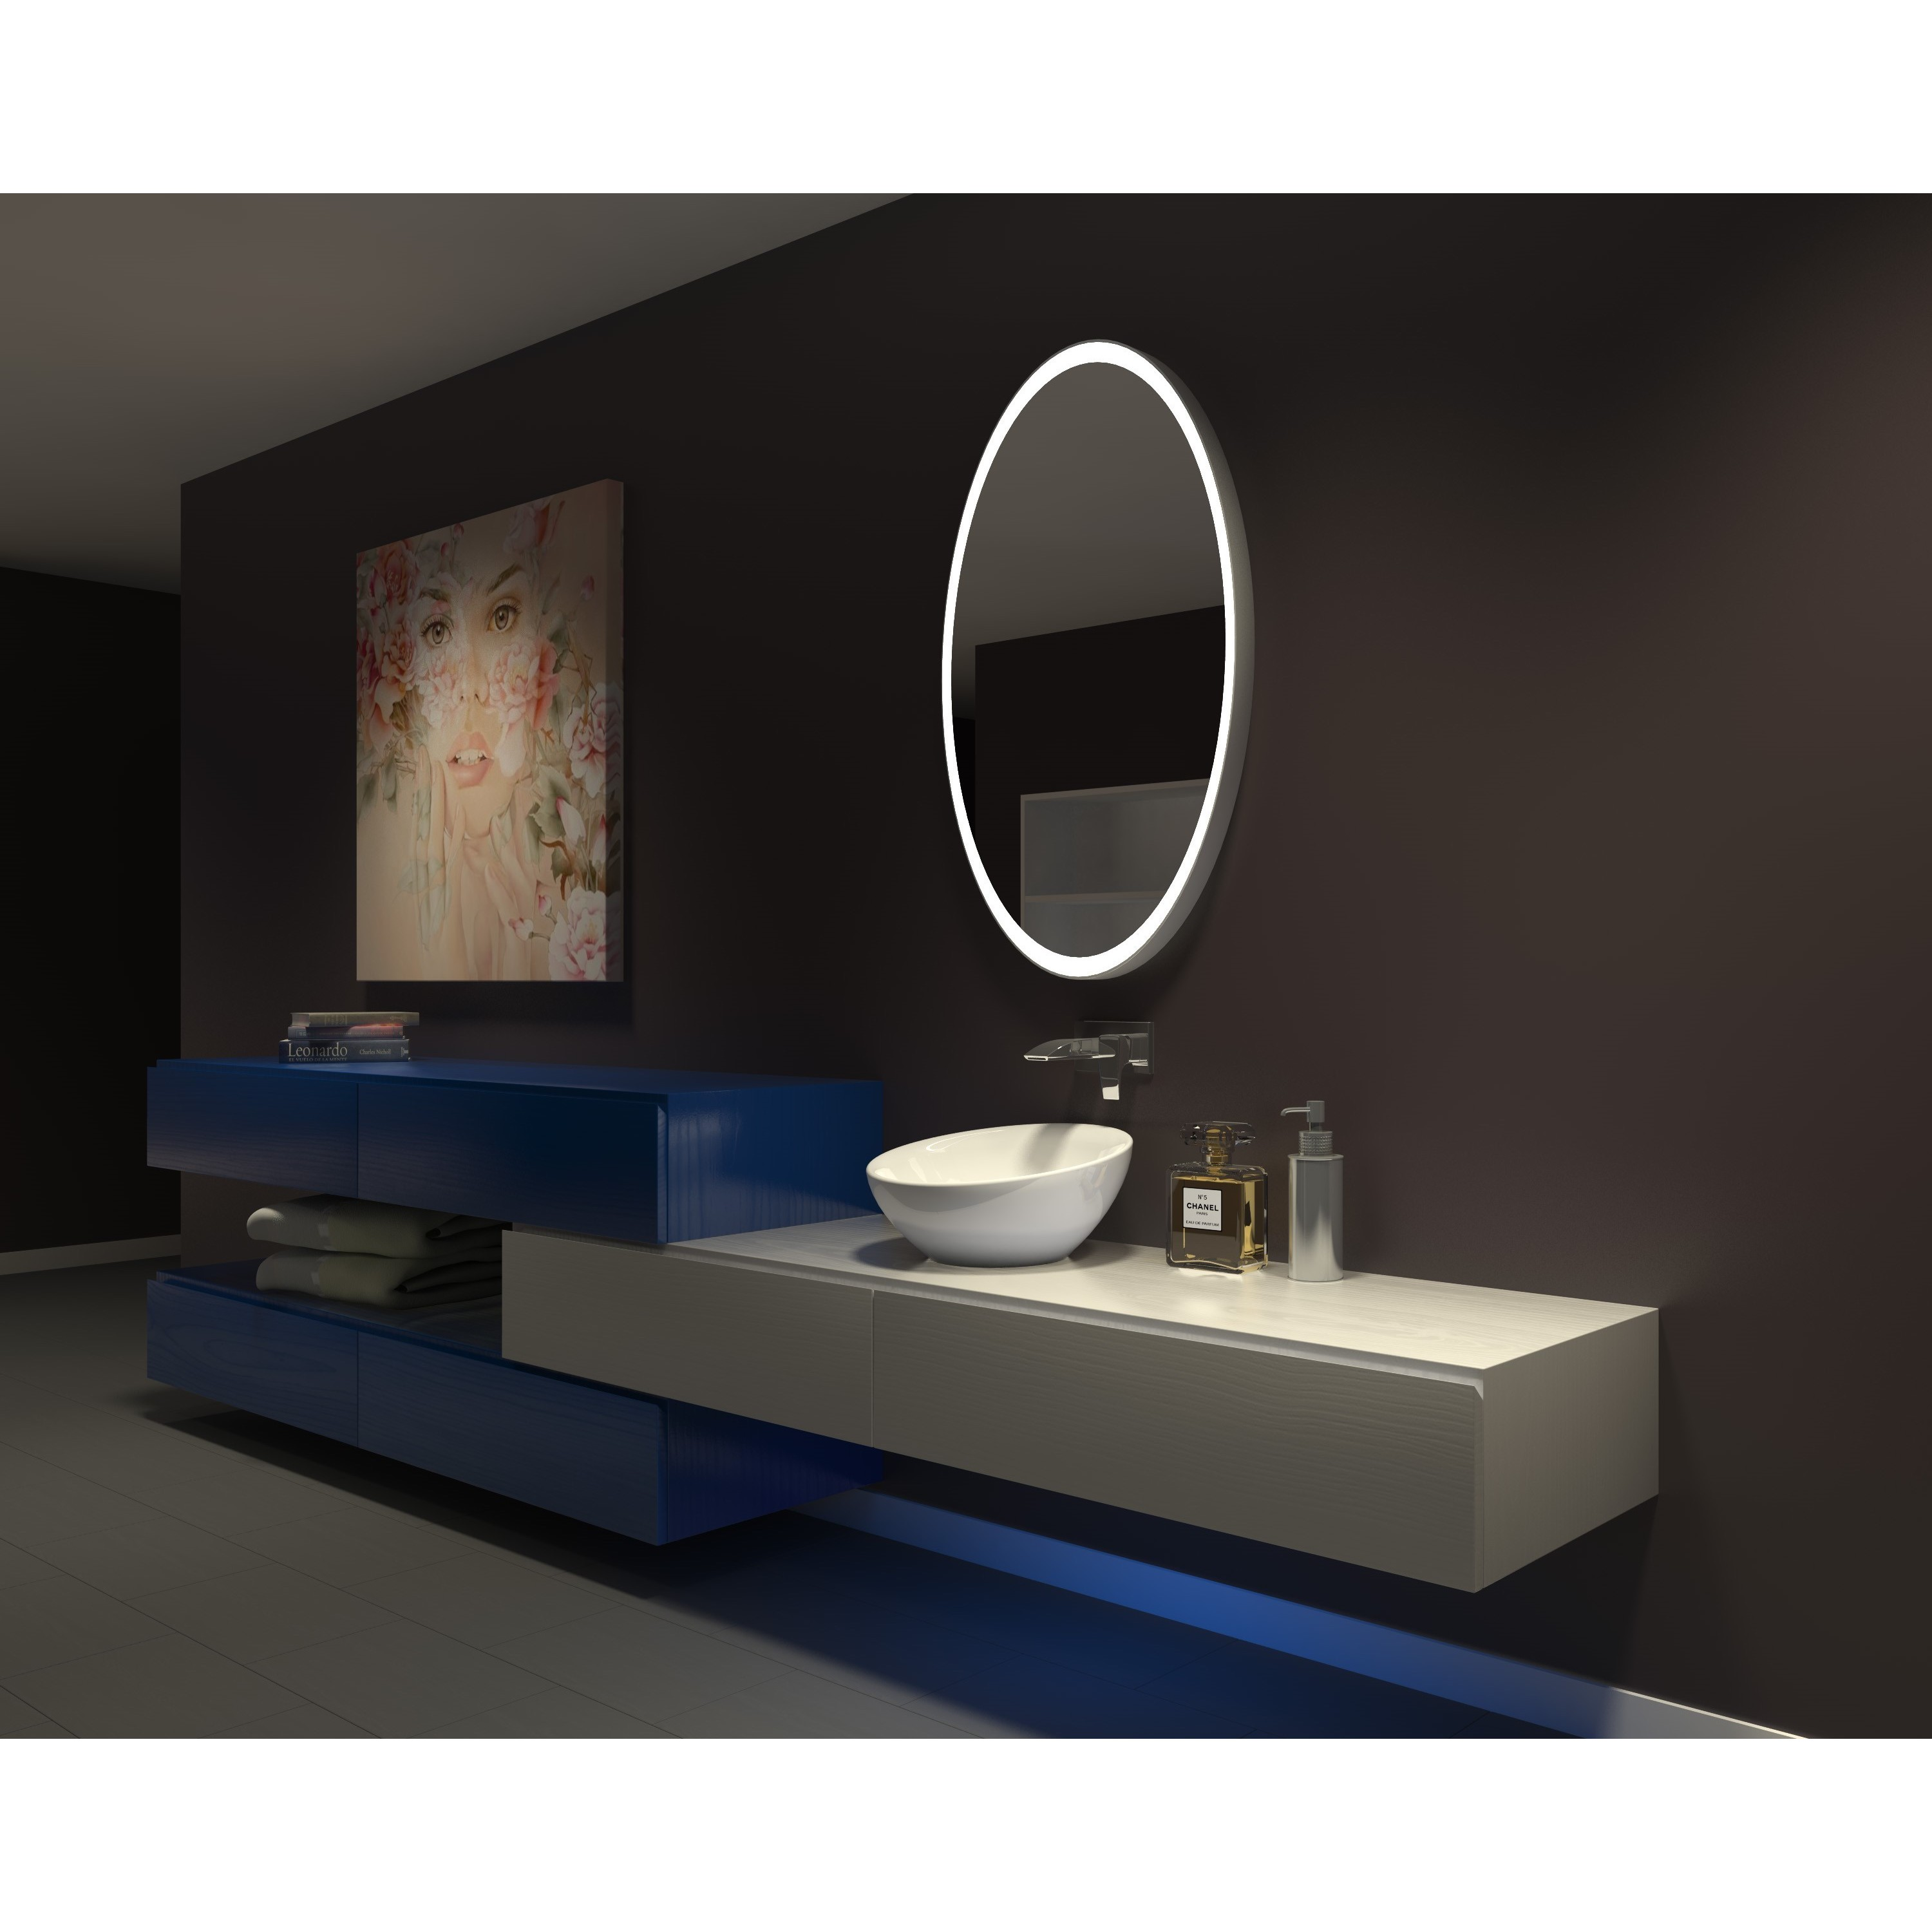 Marvelous Ib Mirror Dimmable Lighted Bathroom Mirror Galaxy 30 In X 48 In 3000 K Download Free Architecture Designs Scobabritishbridgeorg